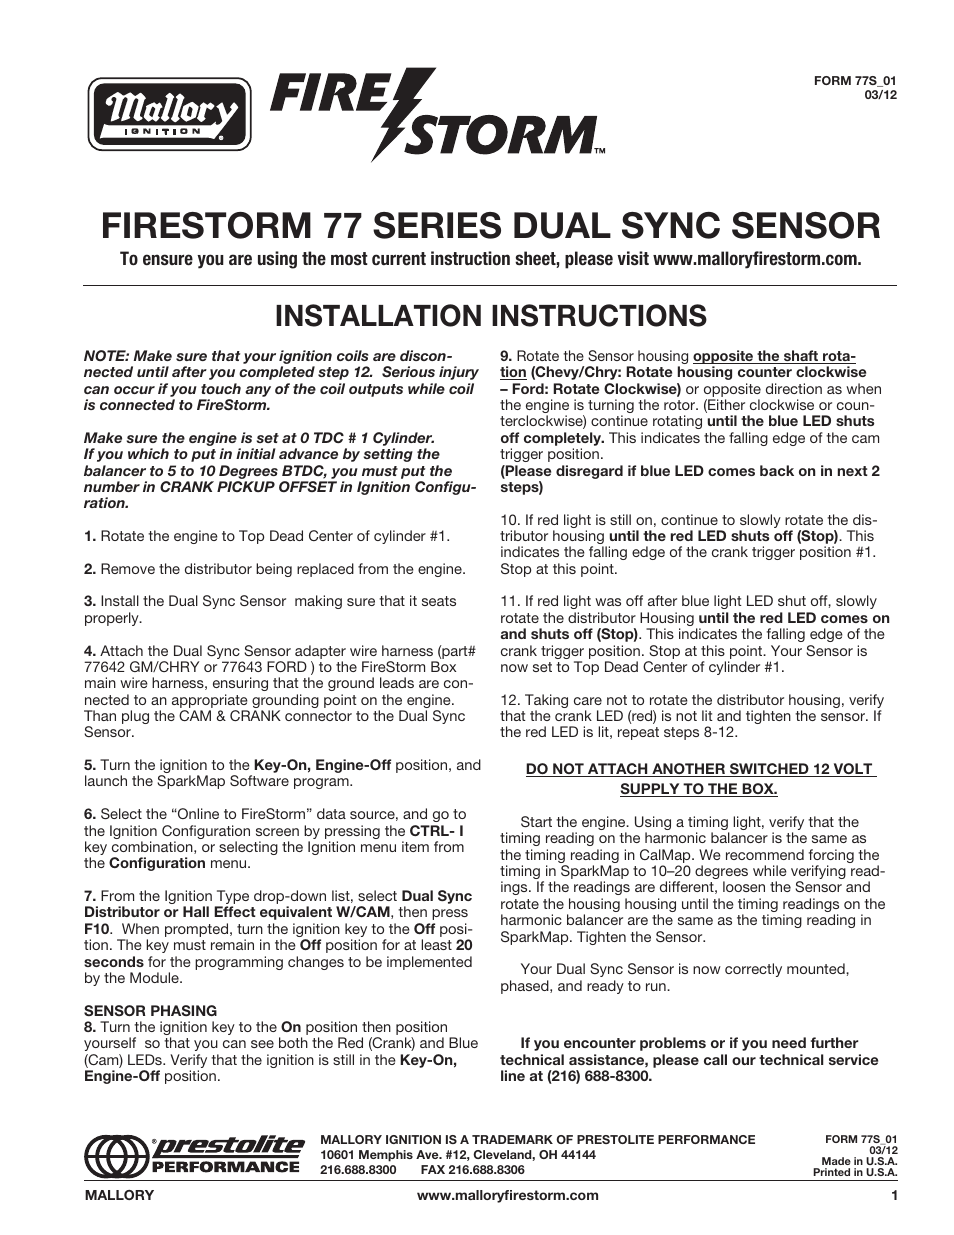 hight resolution of mallory ignition mallory firestorm 77 series dual sync sensor usermallory ignition mallory firestorm 77 series dual